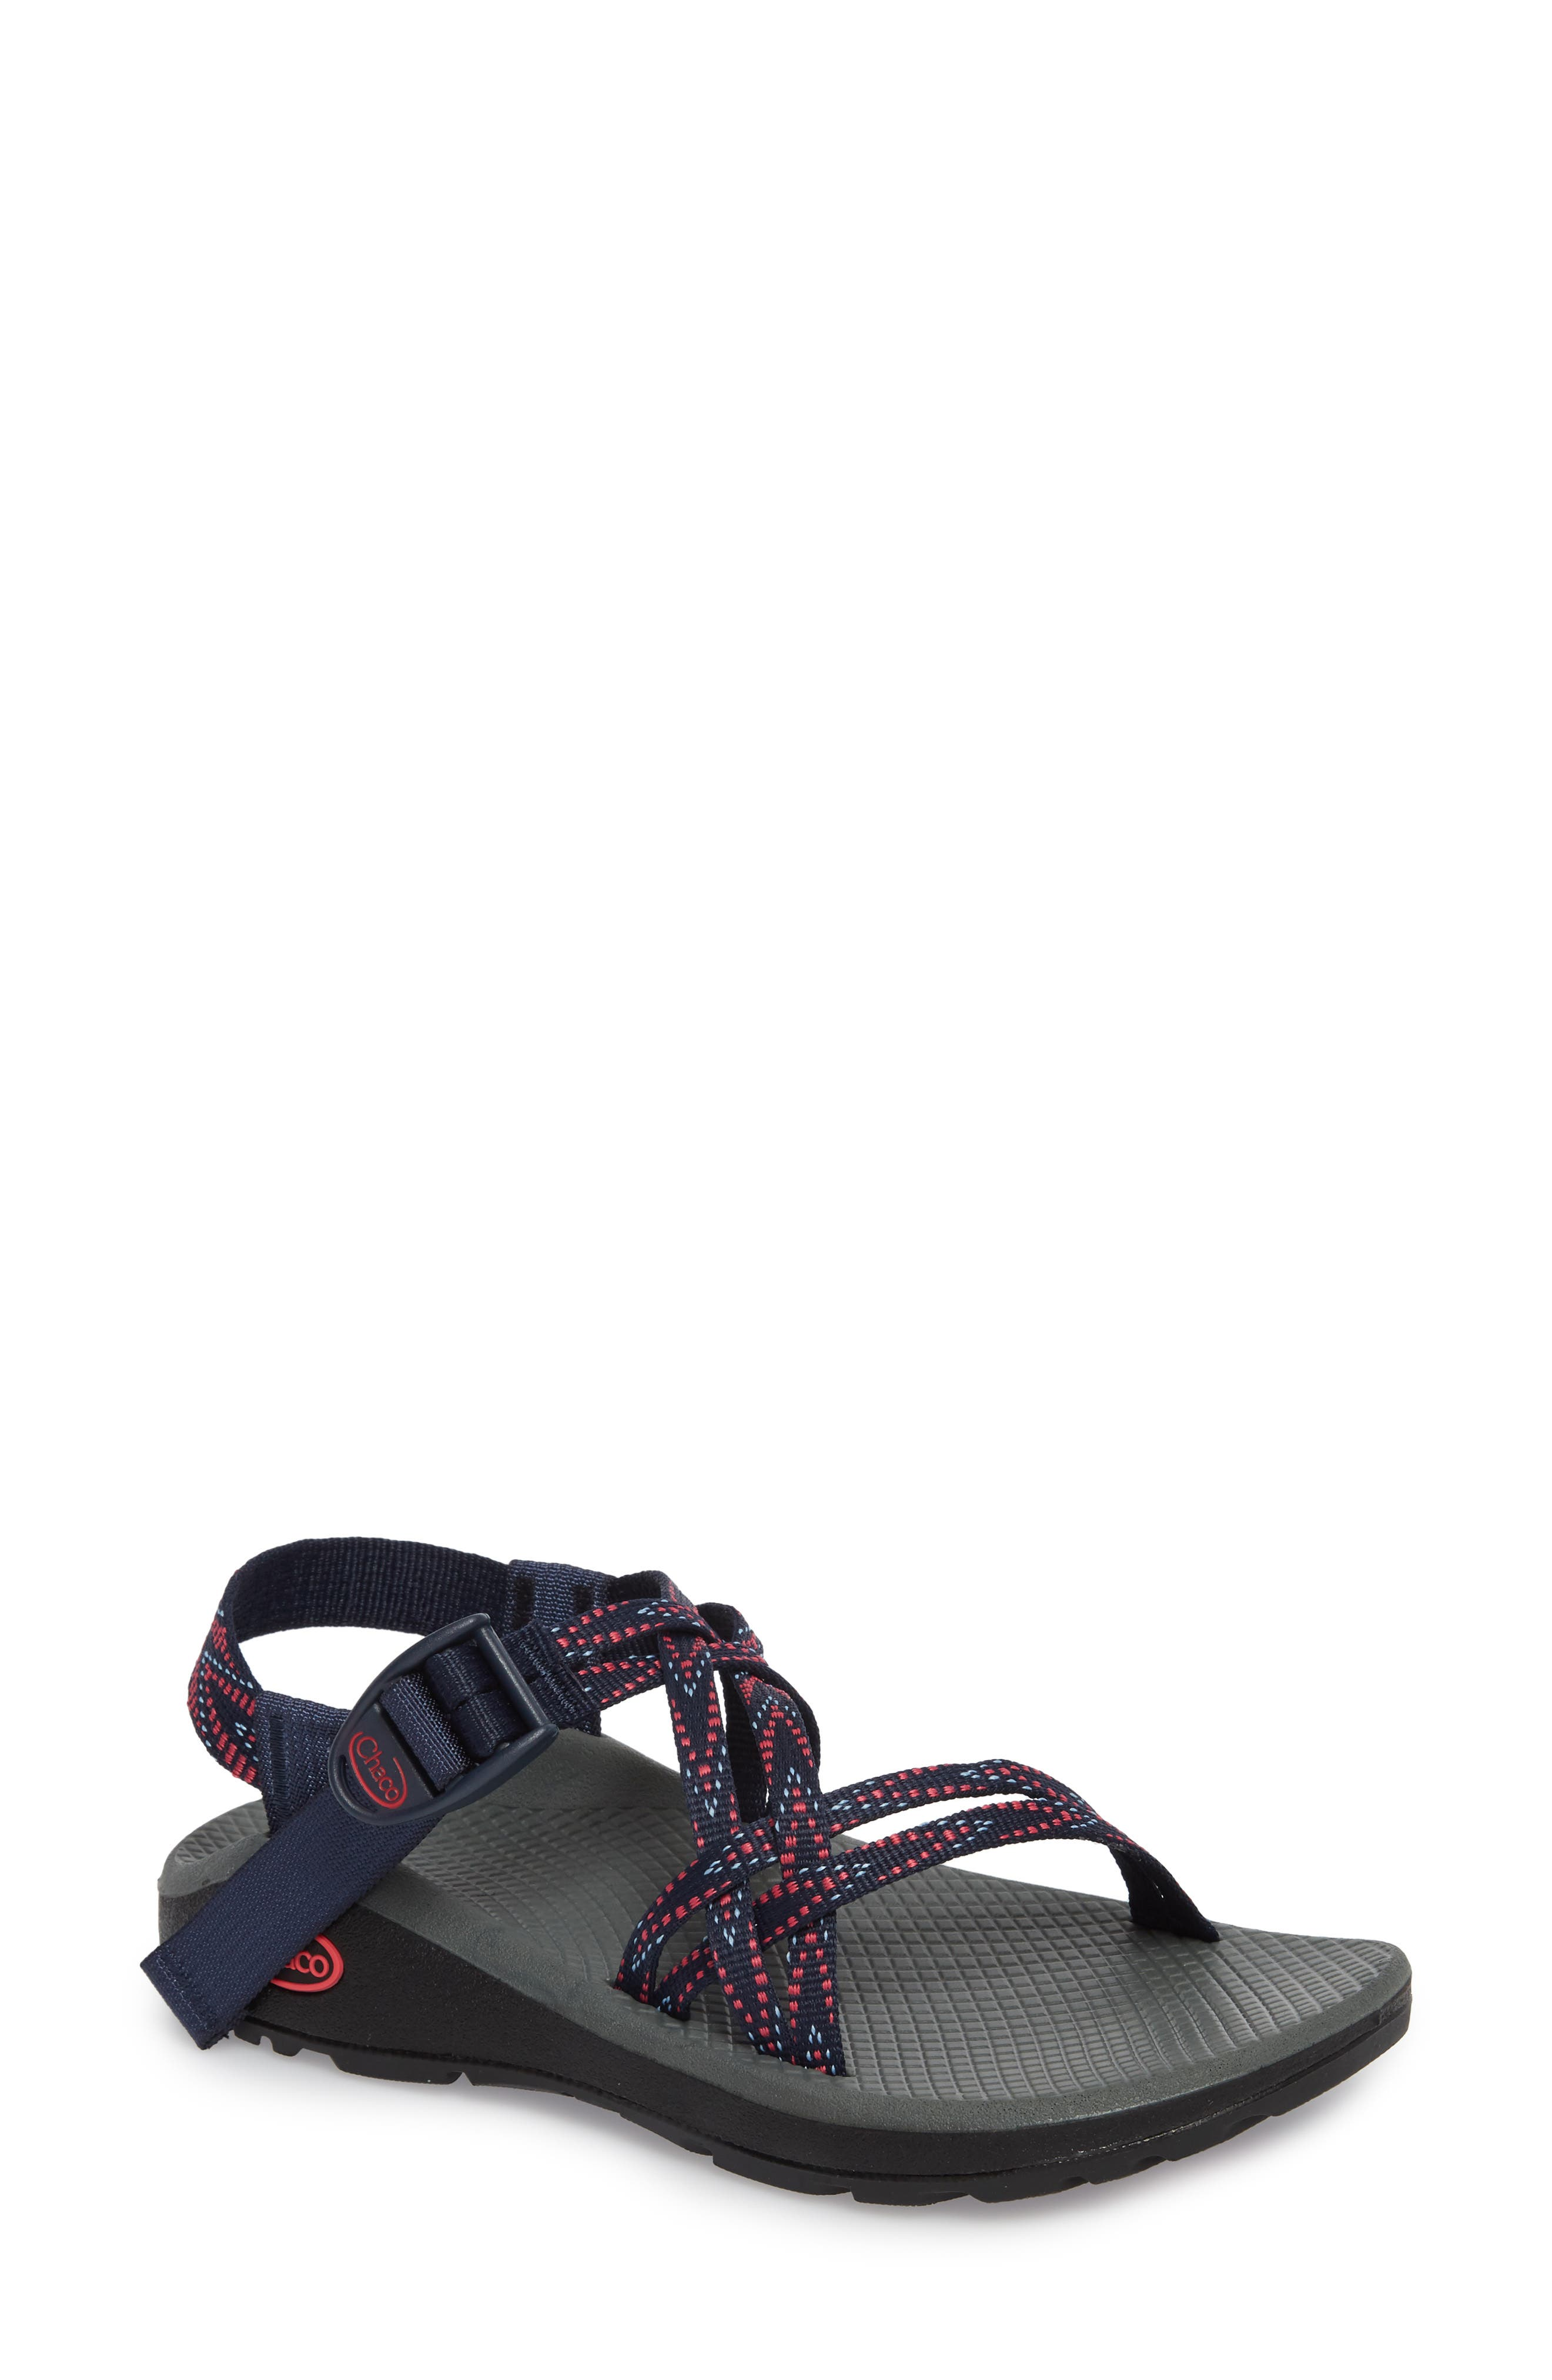 Alternate Image 1 Selected - Chaco Z/Cloud X Sport Sandal (Women)